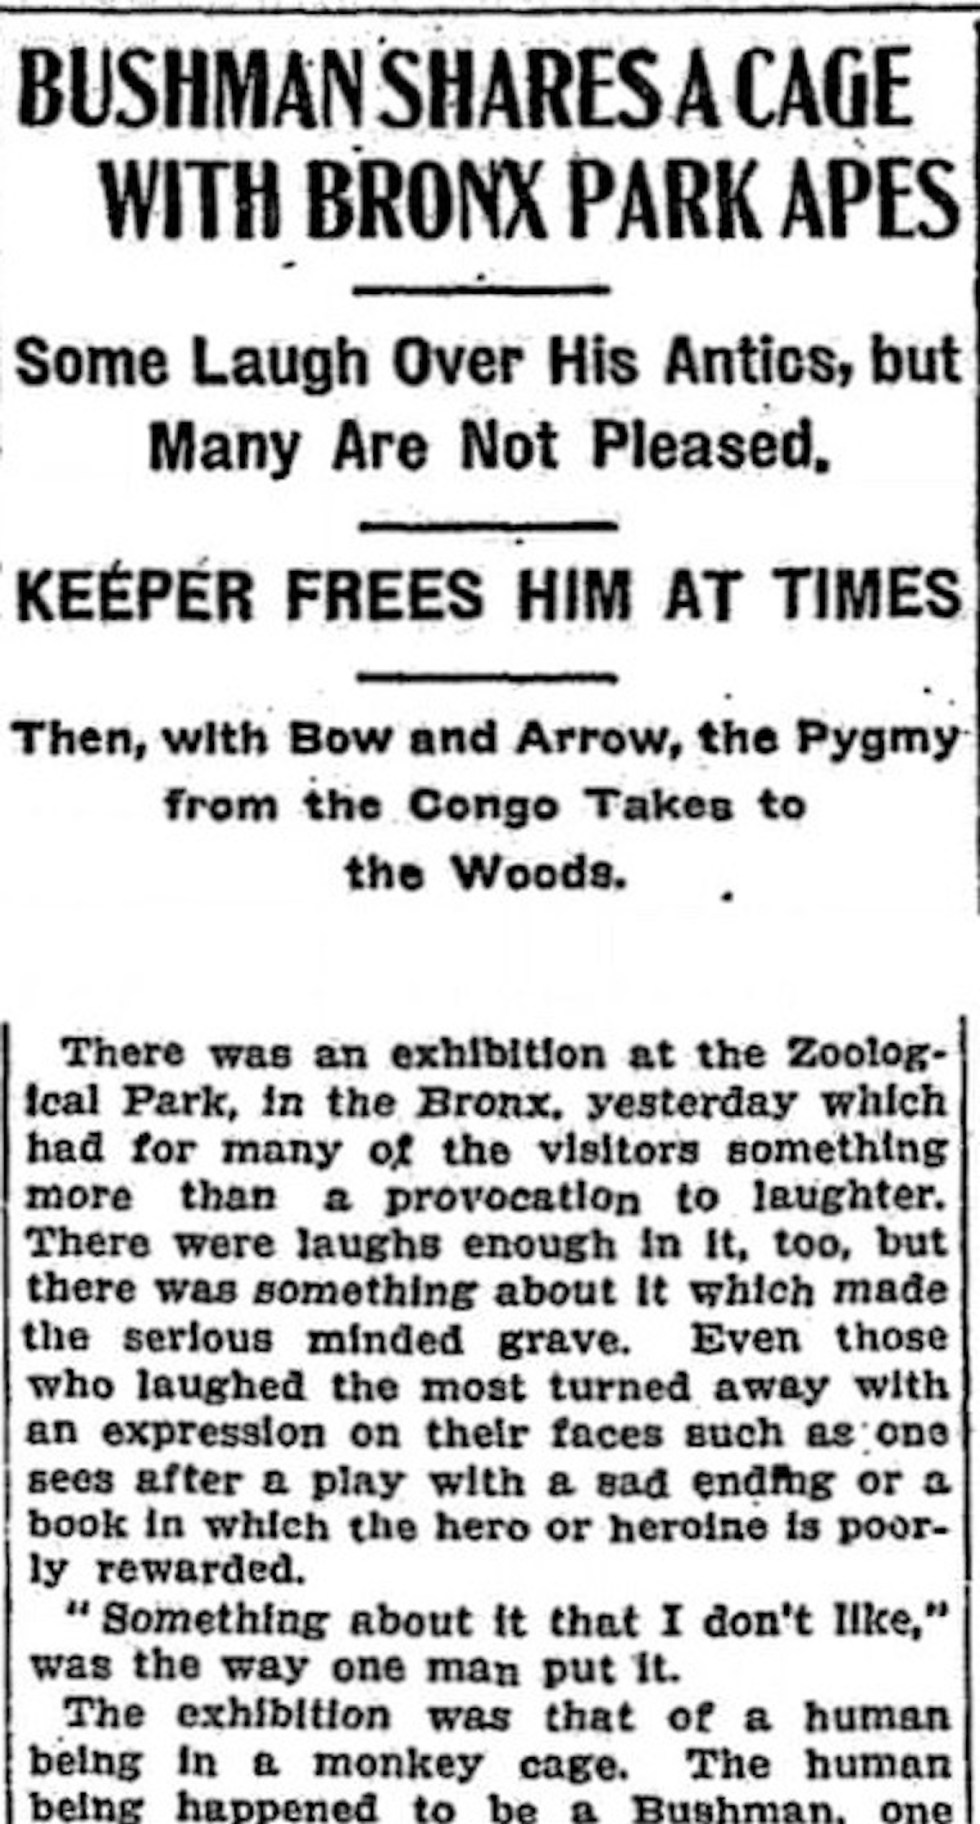 The New York Times report about Ota Benga on September 9, 1906